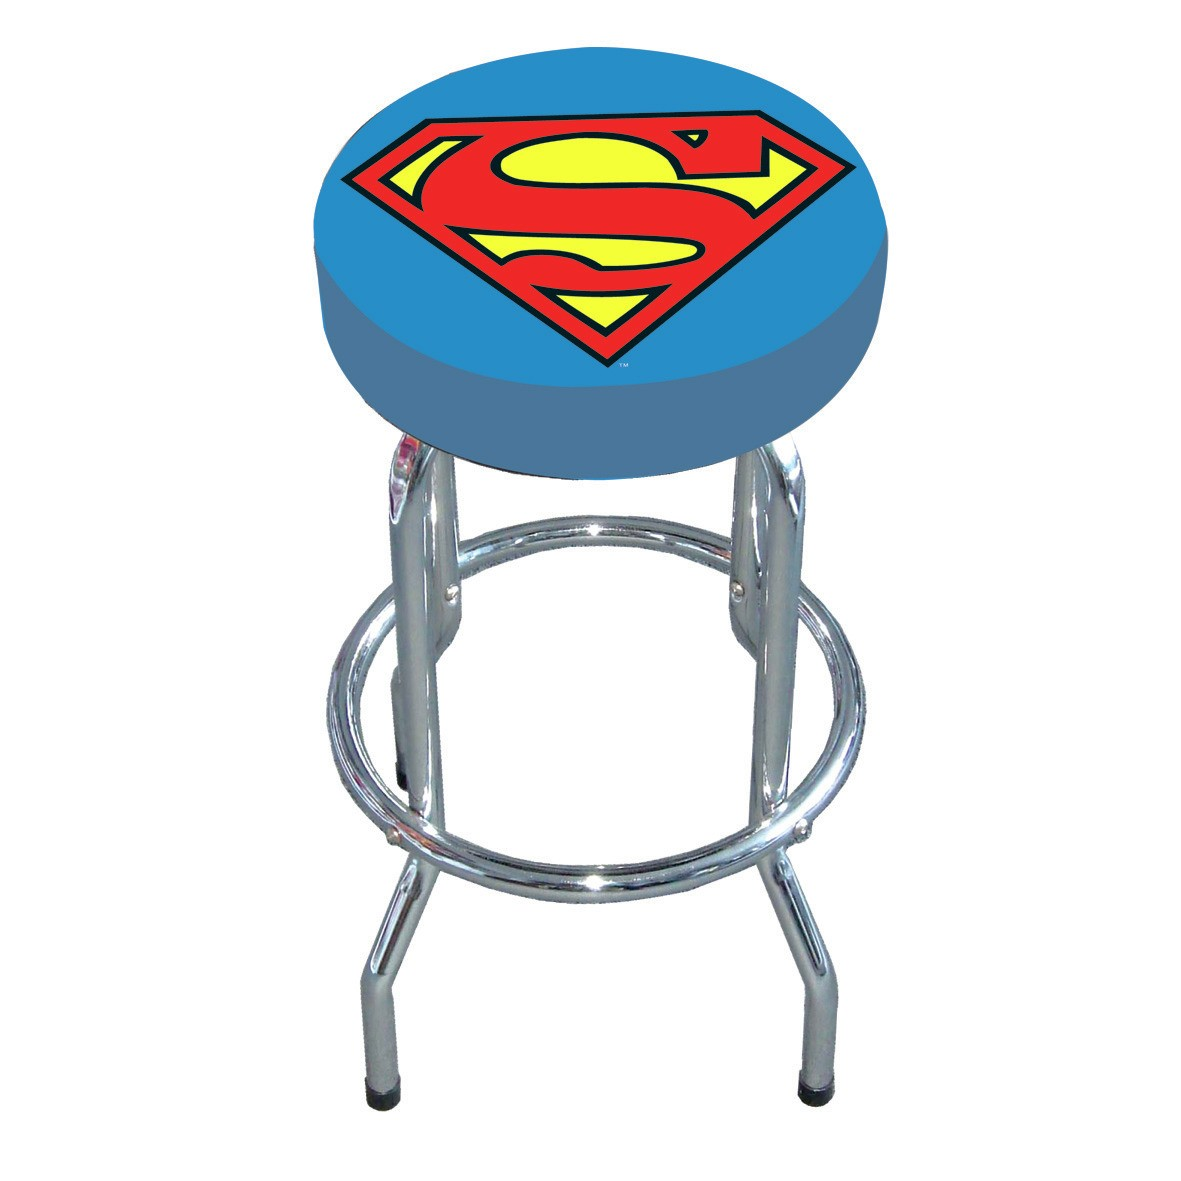 NEW SUPERMAN LOGO BAR STOOL KITCHEN RETRO BREAKFAST STEEL  : superman logo bar stool from ebay.co.uk size 1181 x 1181 jpeg 96kB